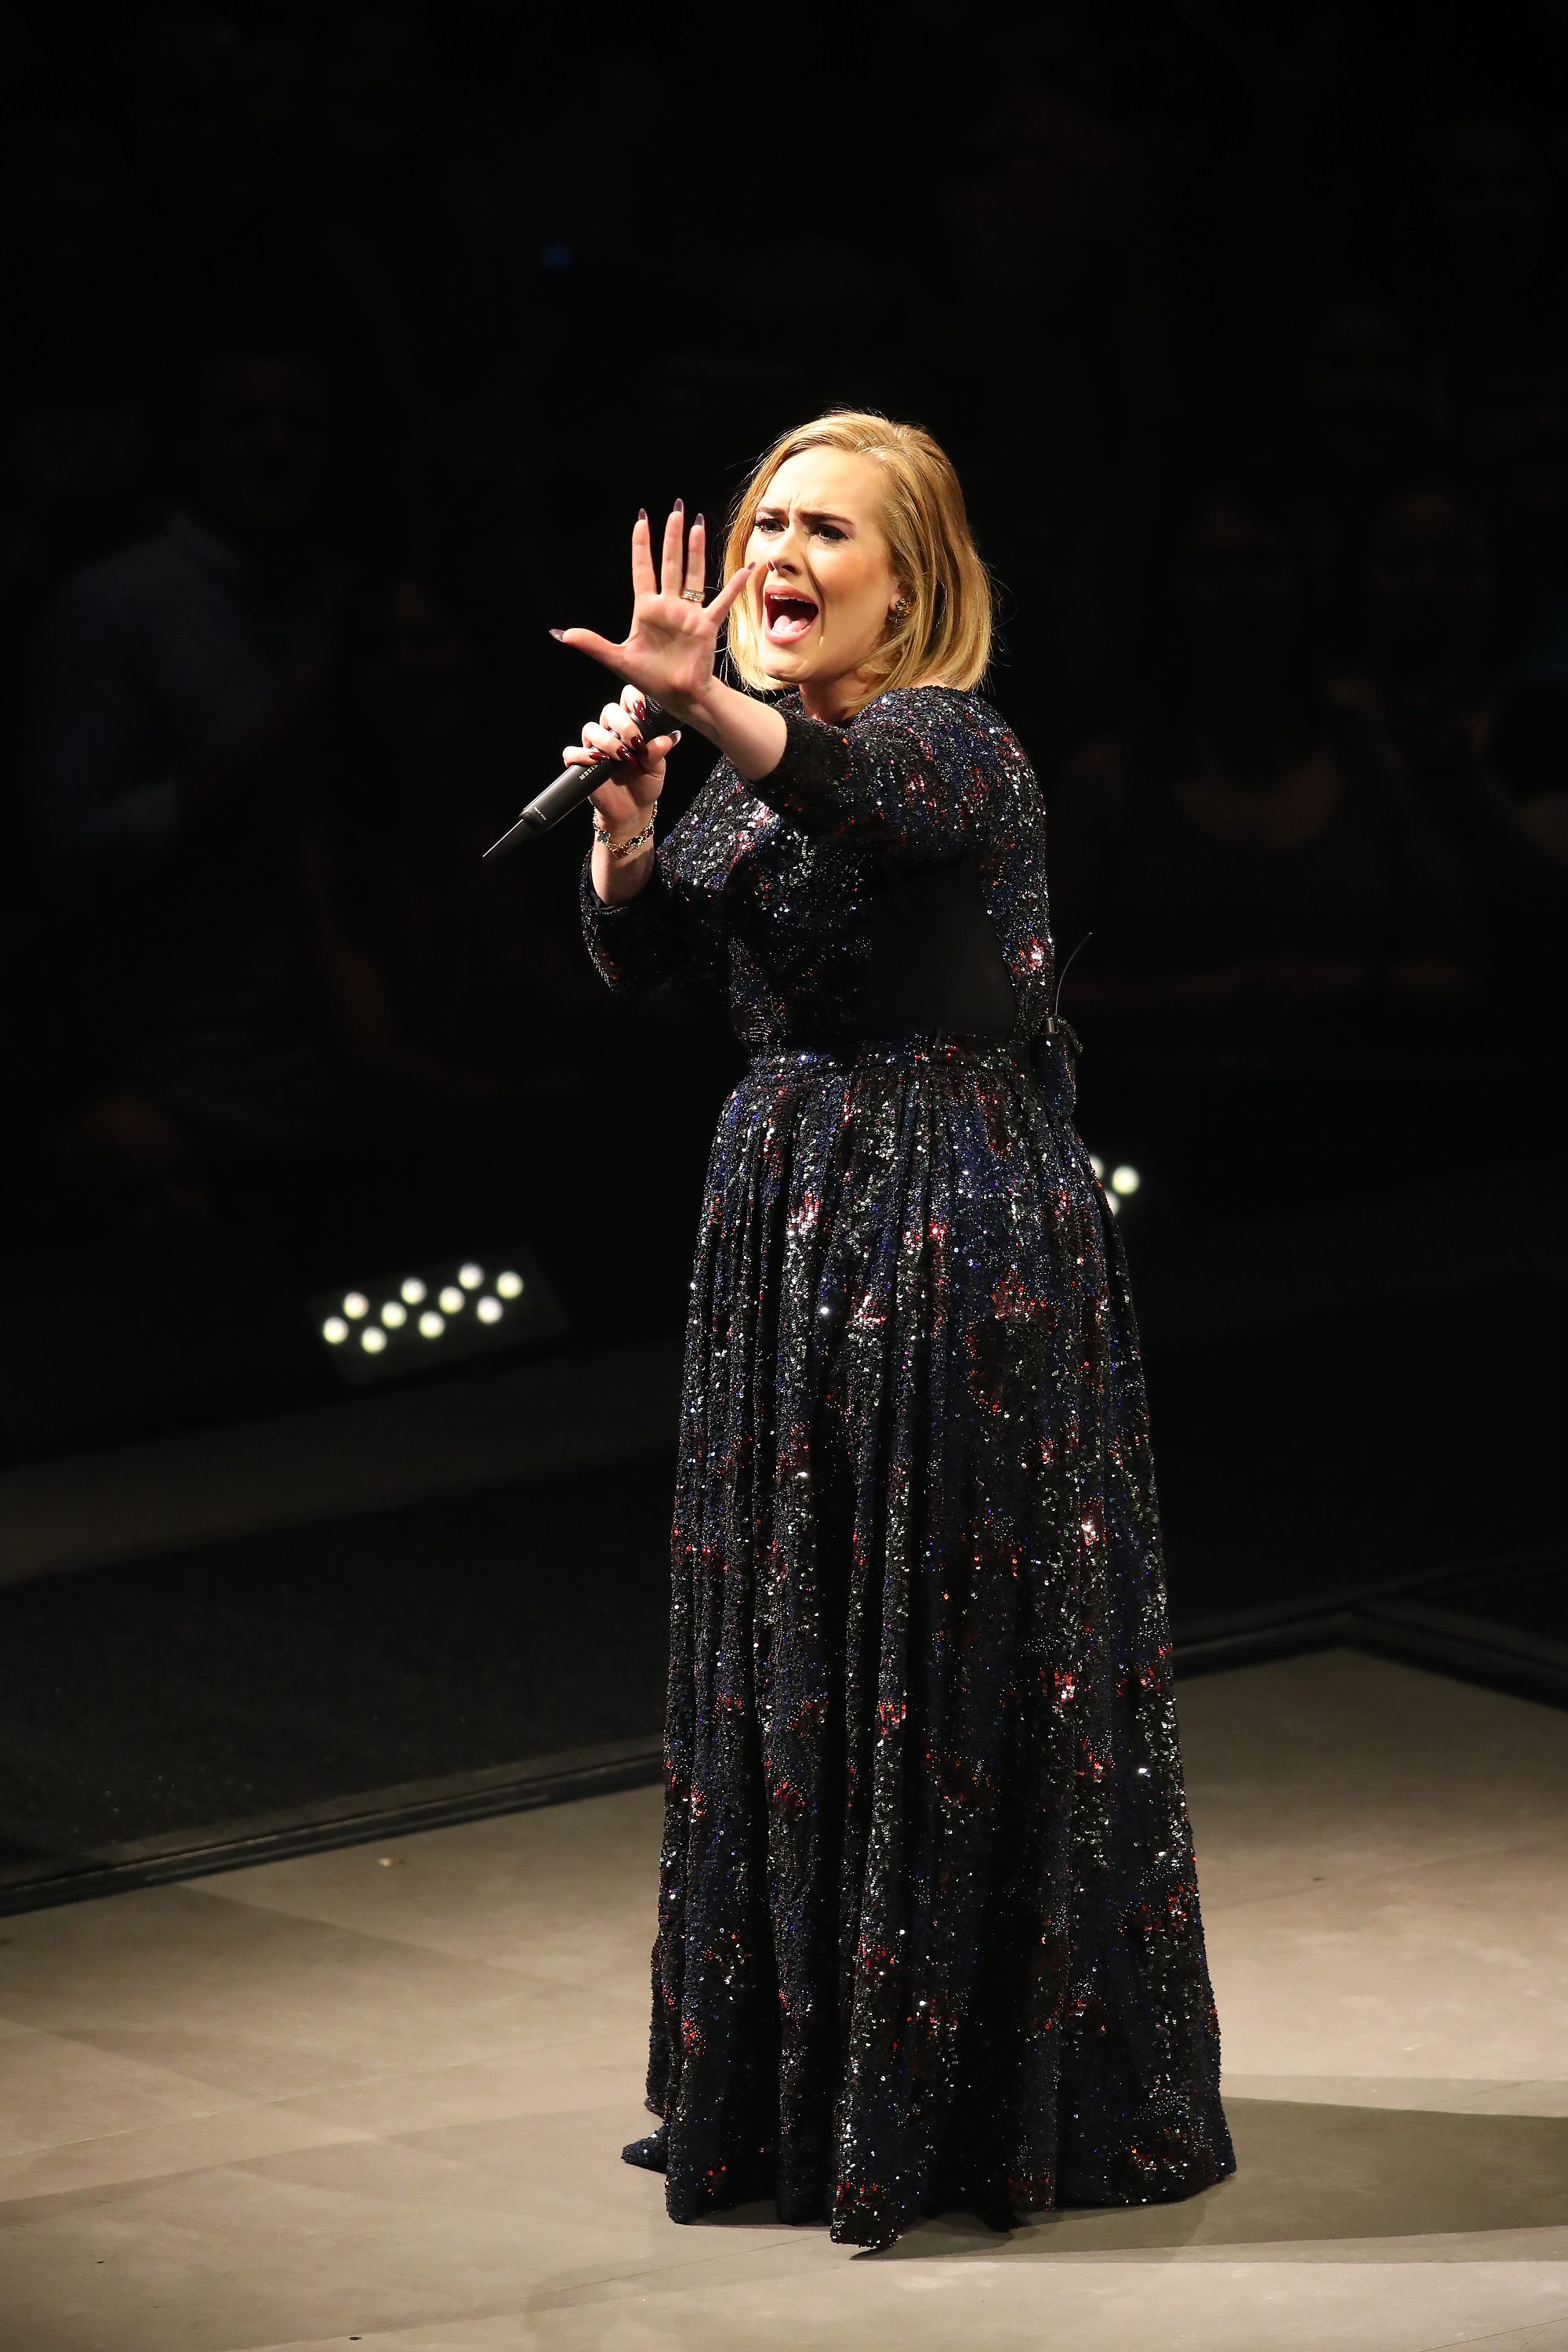 Adele at the Adele Live 2016 - North American Tour